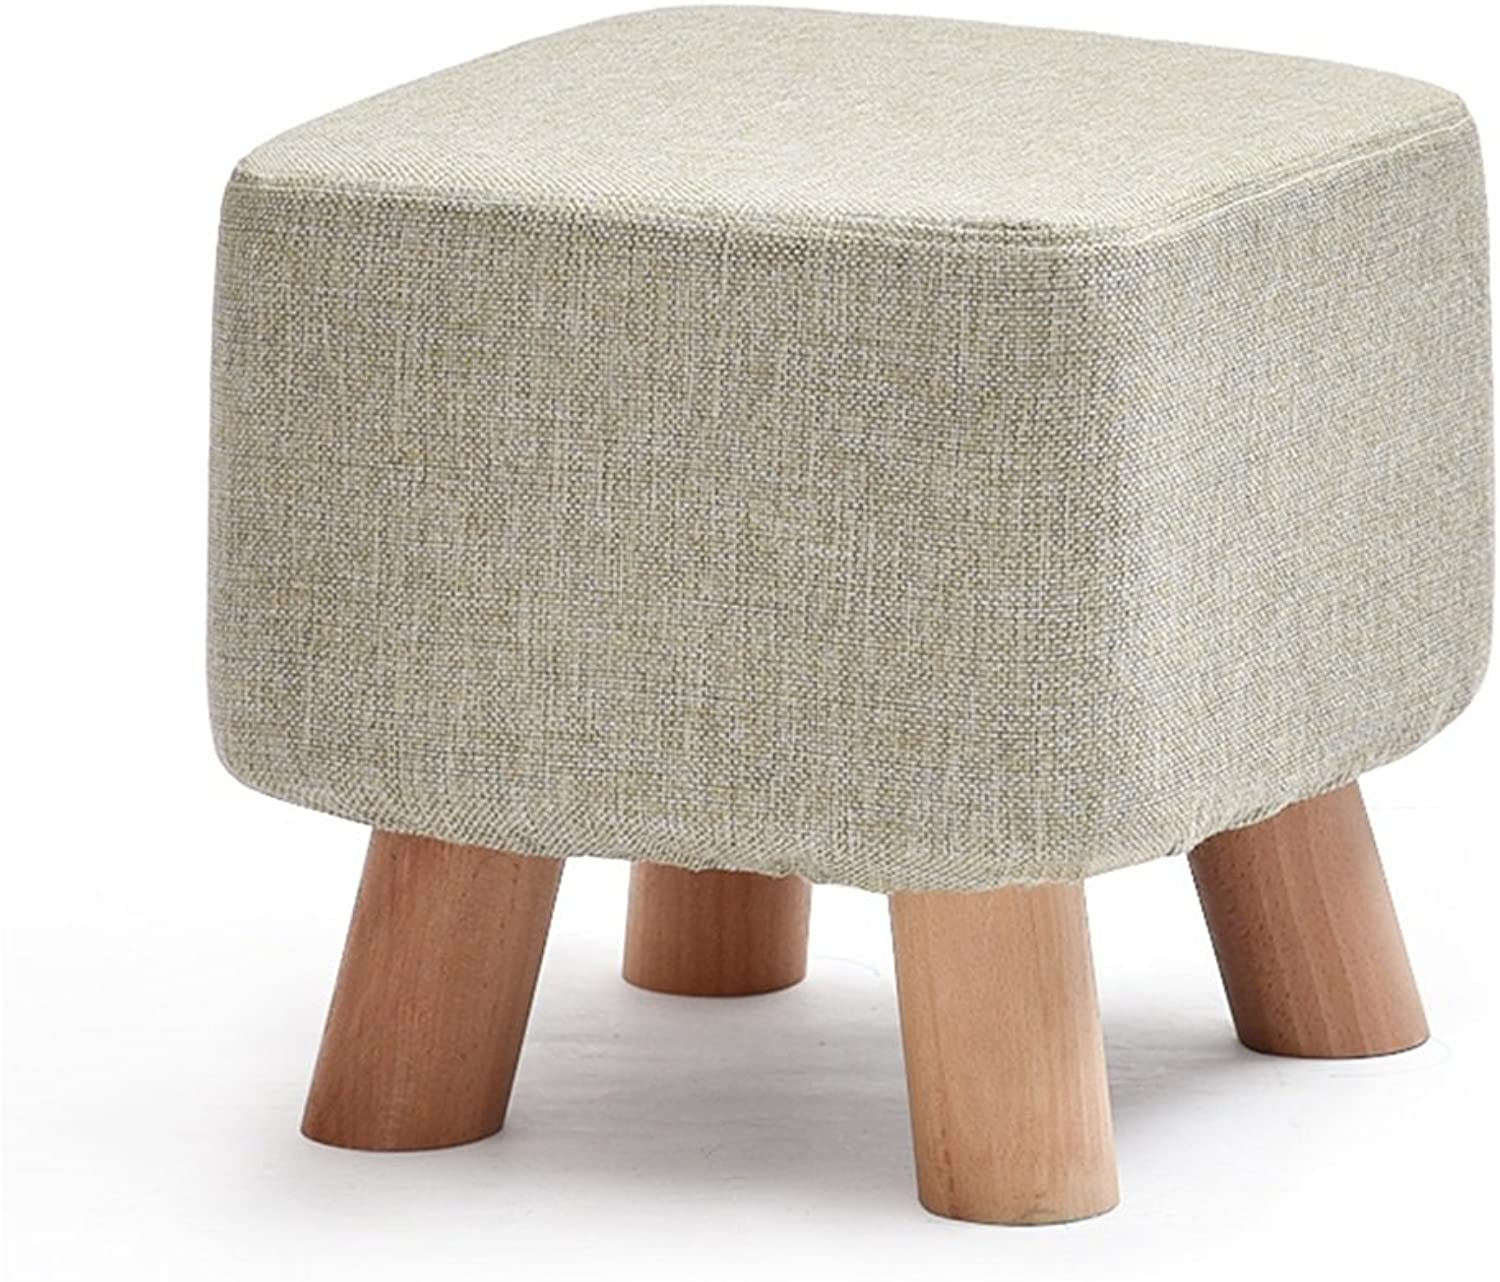 Stools Beech production color shoes high rebound sponge small bench 29  29  29cm (color   Beige)